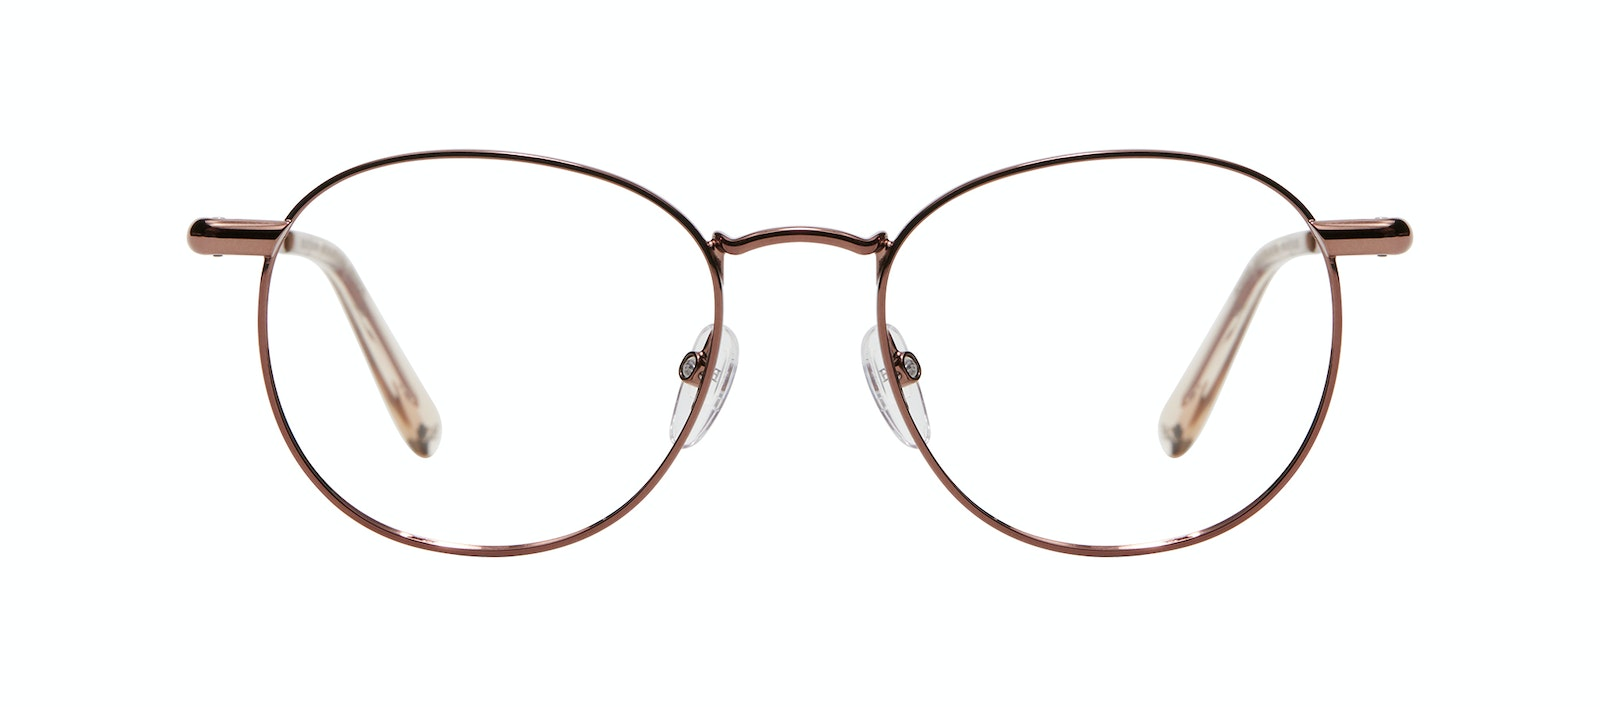 Affordable Fashion Glasses Round Eyeglasses Men Women Divine M Copper Front